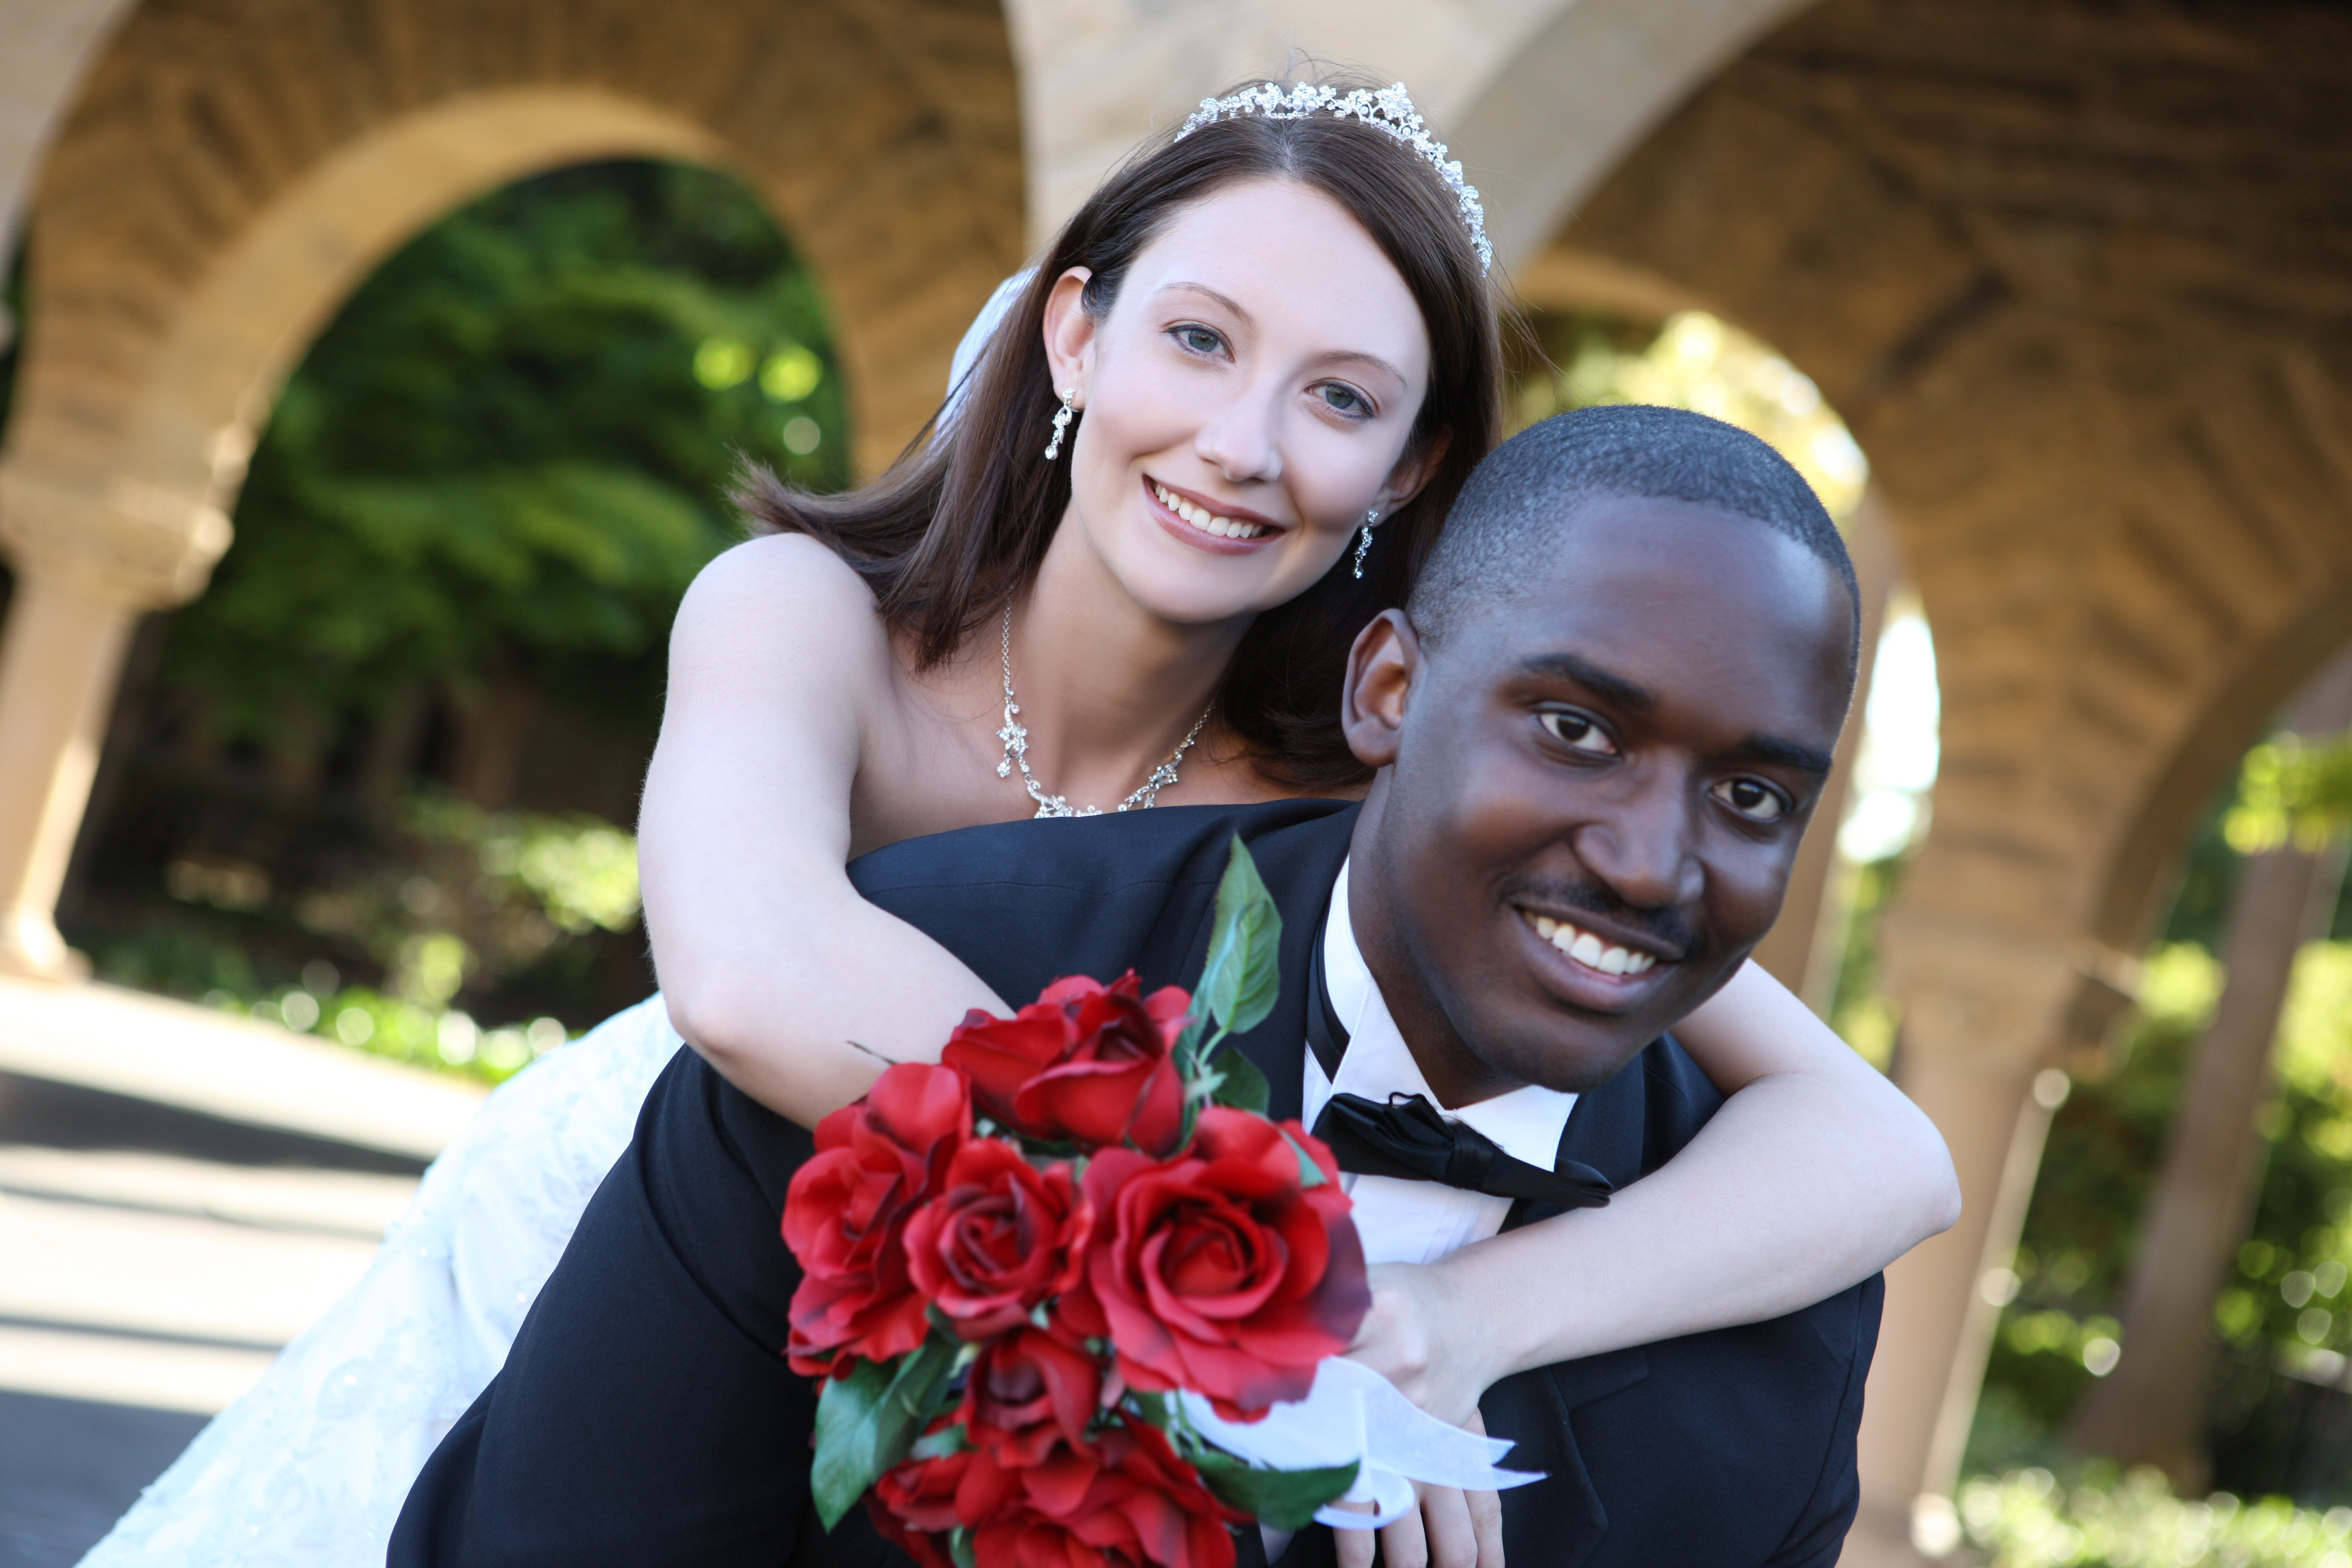 Interracial marriage views #2